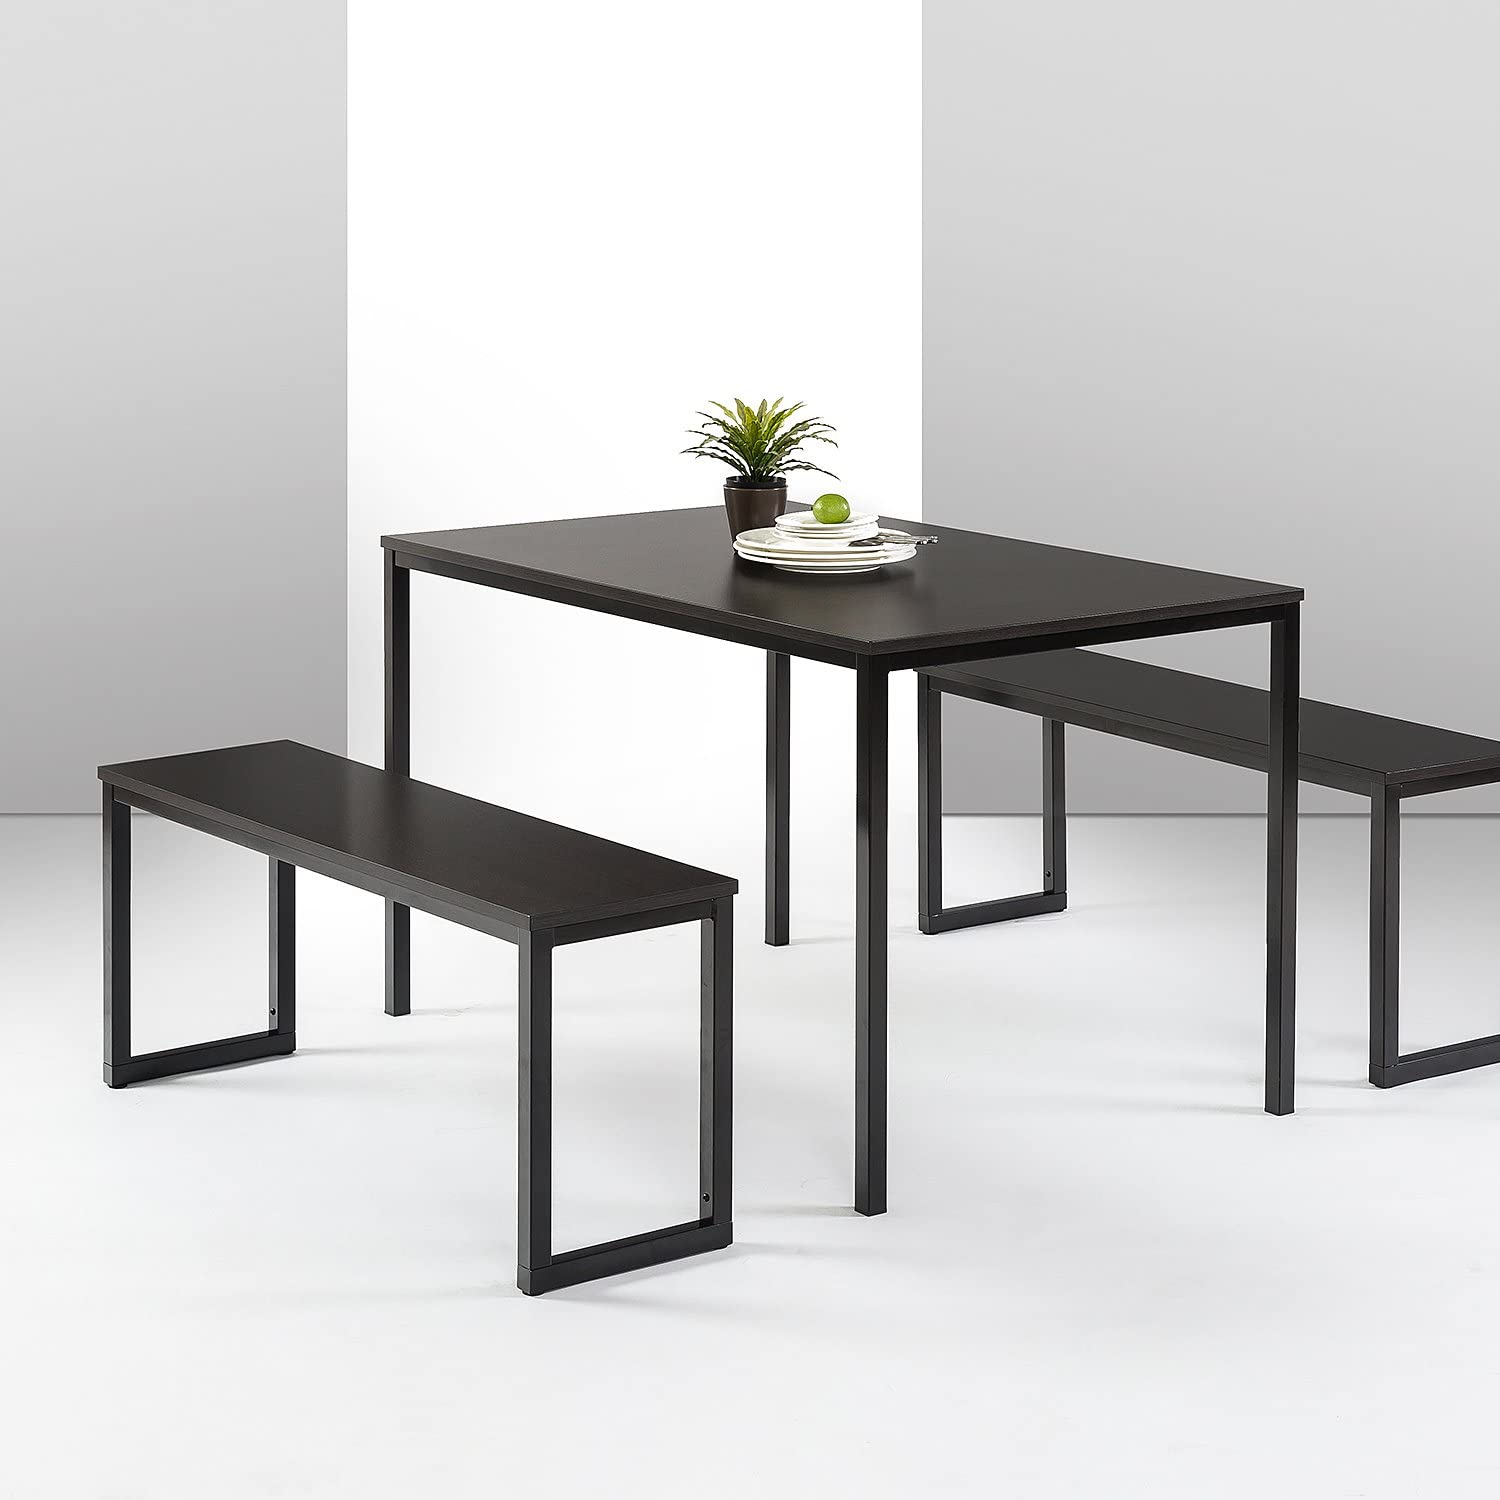 Zinus Louis Modern Studio Collection Soho Dining Table with Two Benches 3 piece set, Espresso